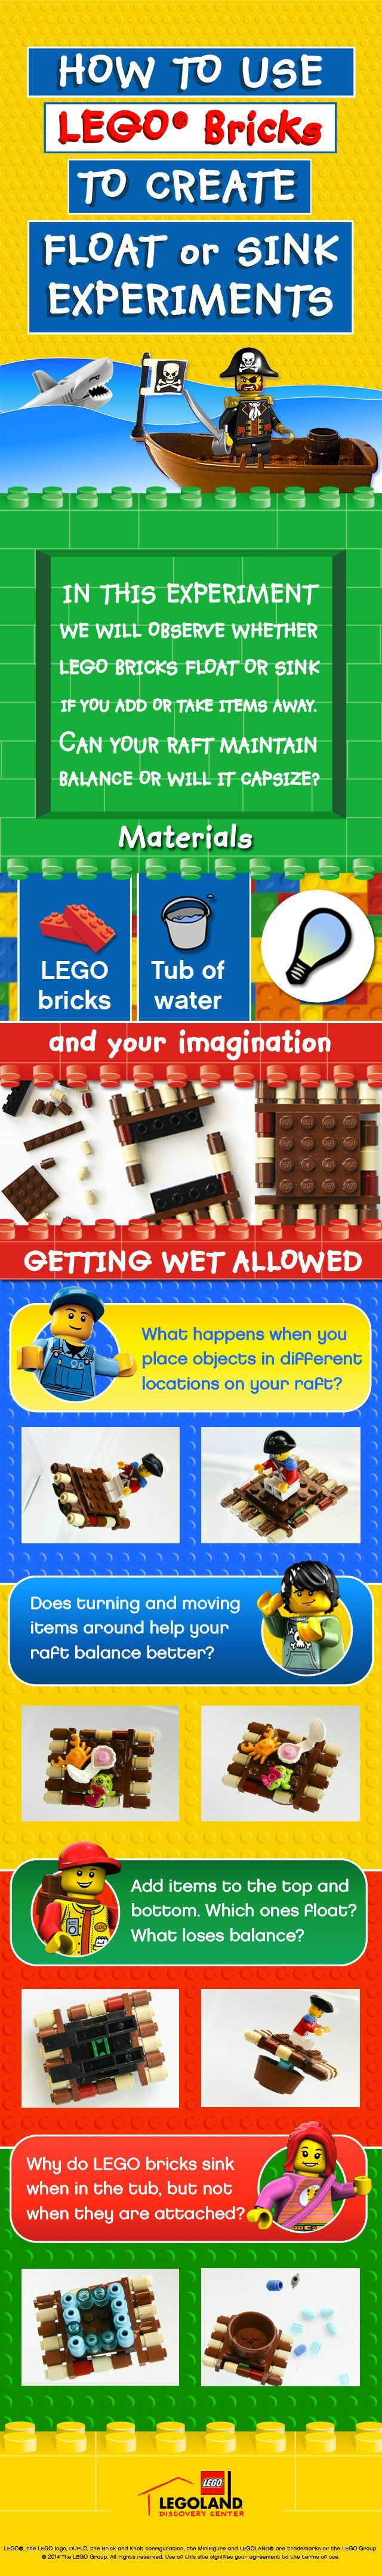 How to use LEGO Bricks to create Float or Sink Experiments and LEGO Learning. This info graphic was ponsored by LEGOLAND Discovery Center in Westchester England.